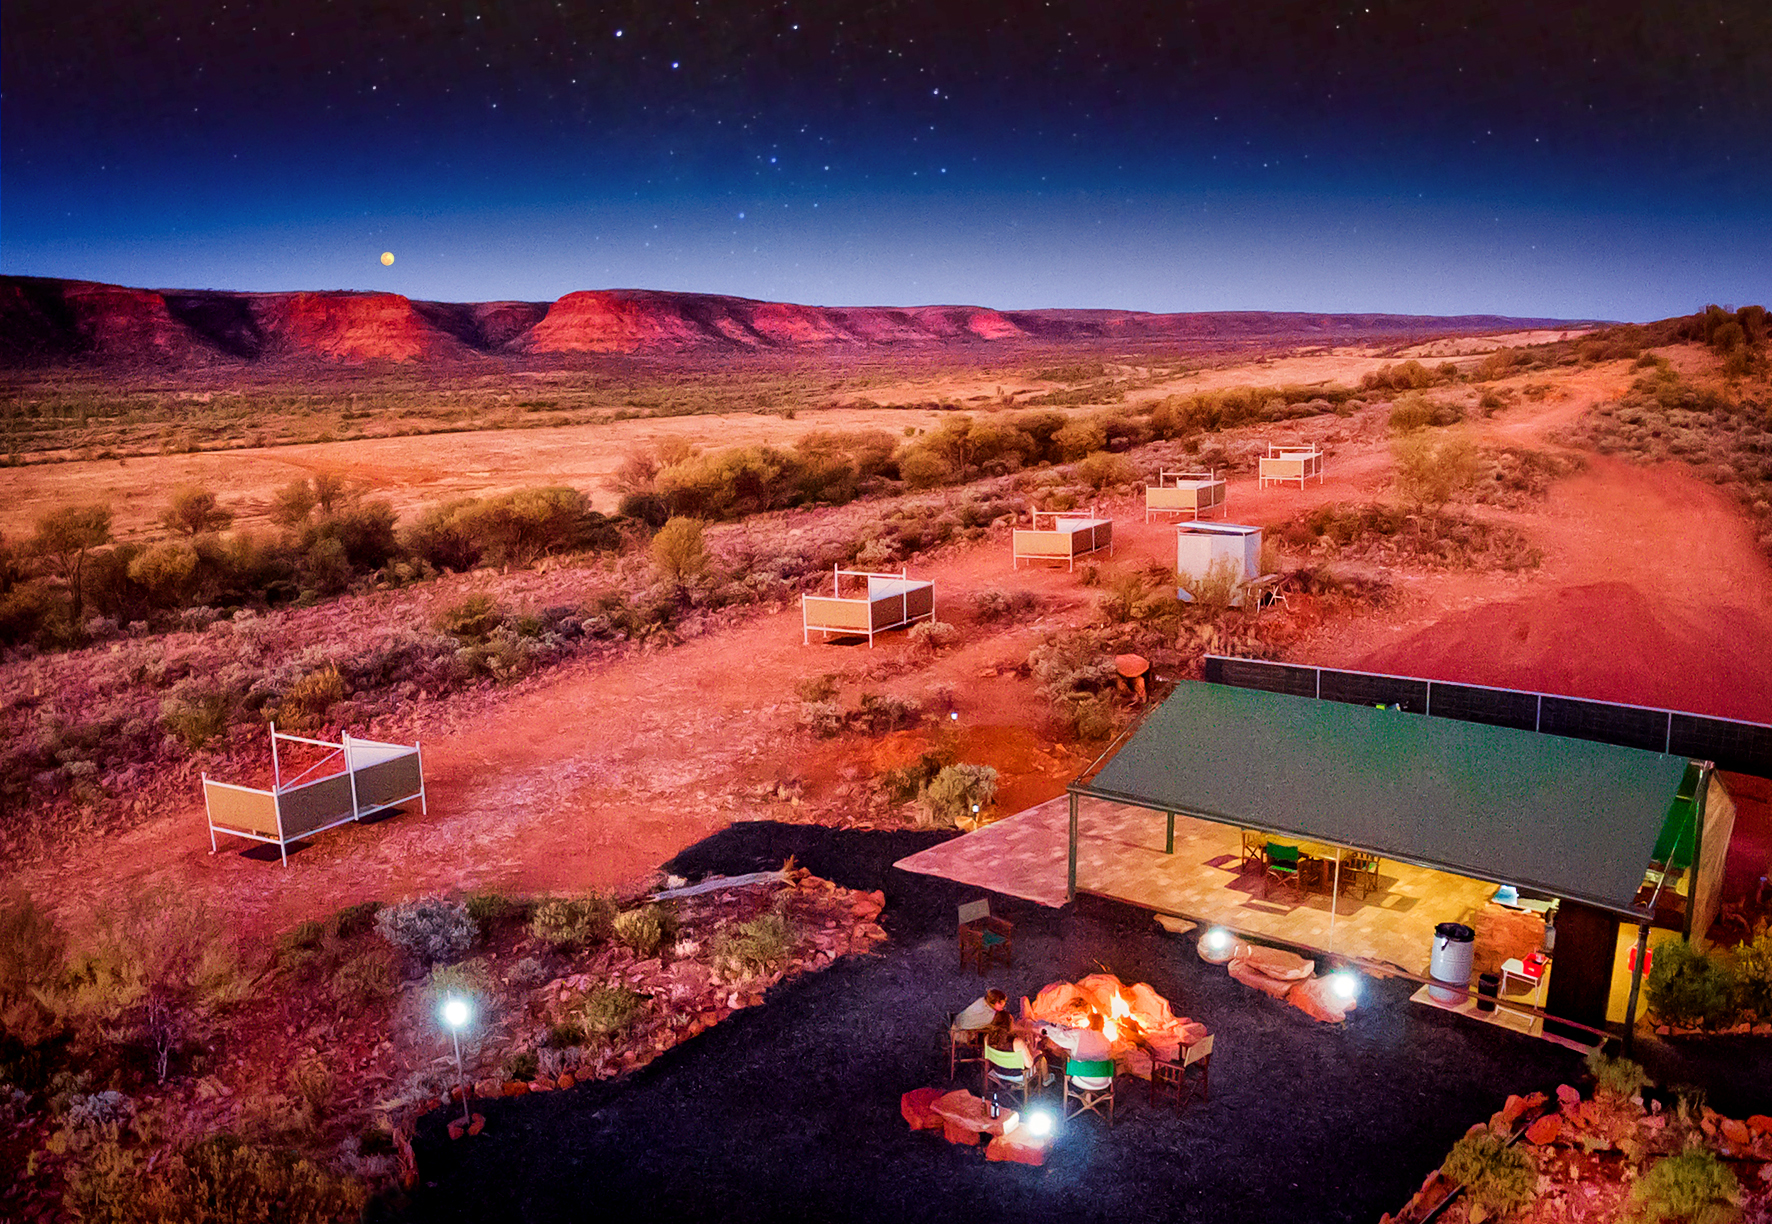 Drovers Camp after sundown with stars +moon.jpg